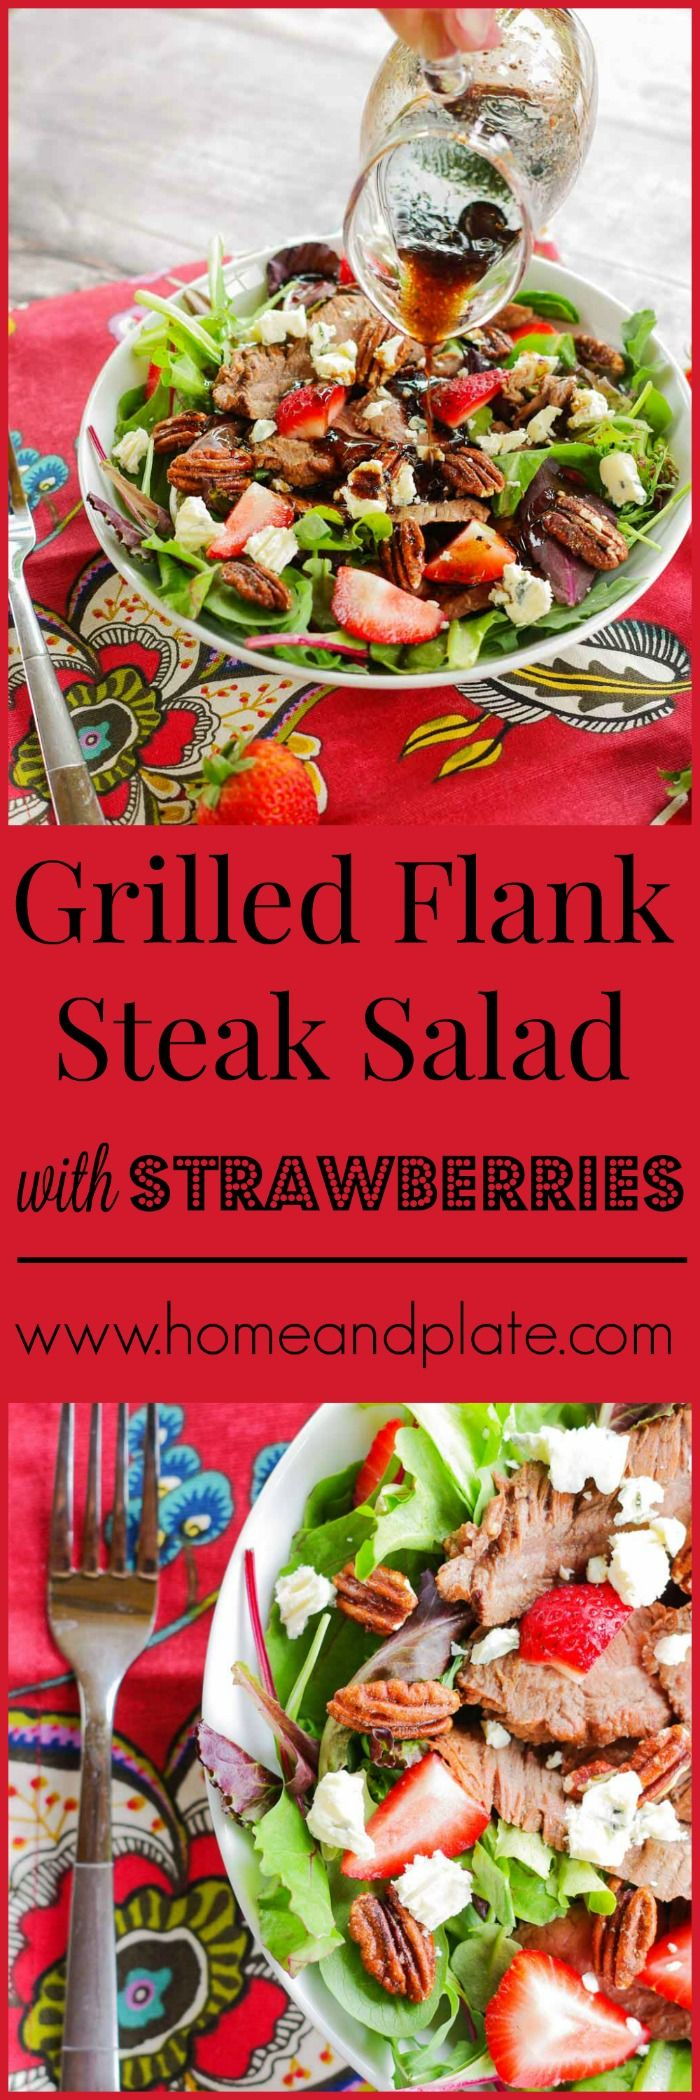 Grilled Flank Steak Salad with Strawberries | www,homeandplate.com | Enjoy juicy marinated grilled flank steak and summer's sweet strawberries sprinkled on top of fresh greens.